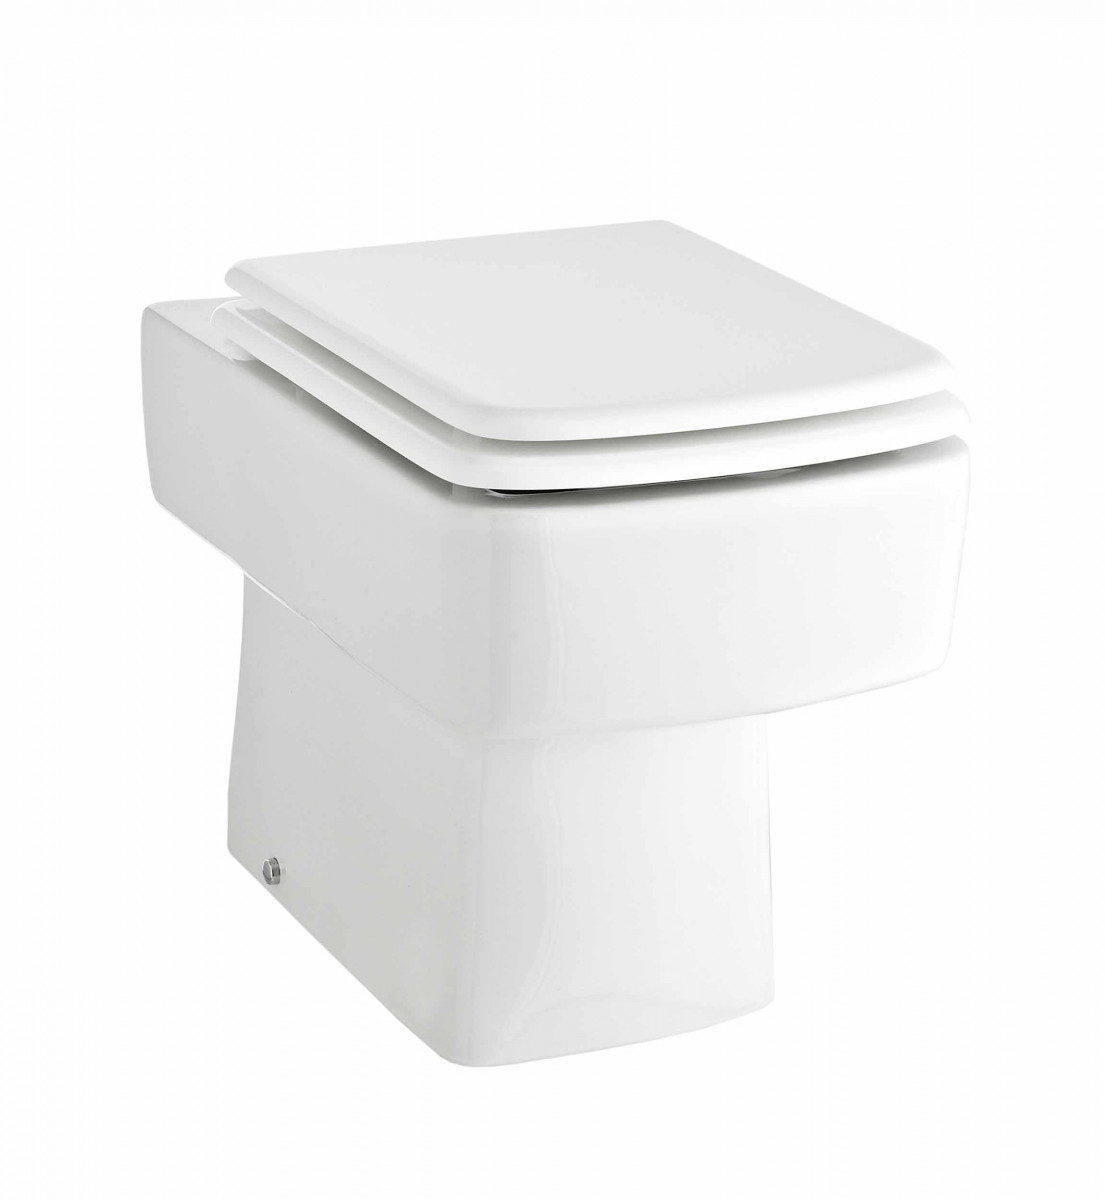 square toilet seat uk. Bliss Back To Wall Toilet Complete With Square Seat